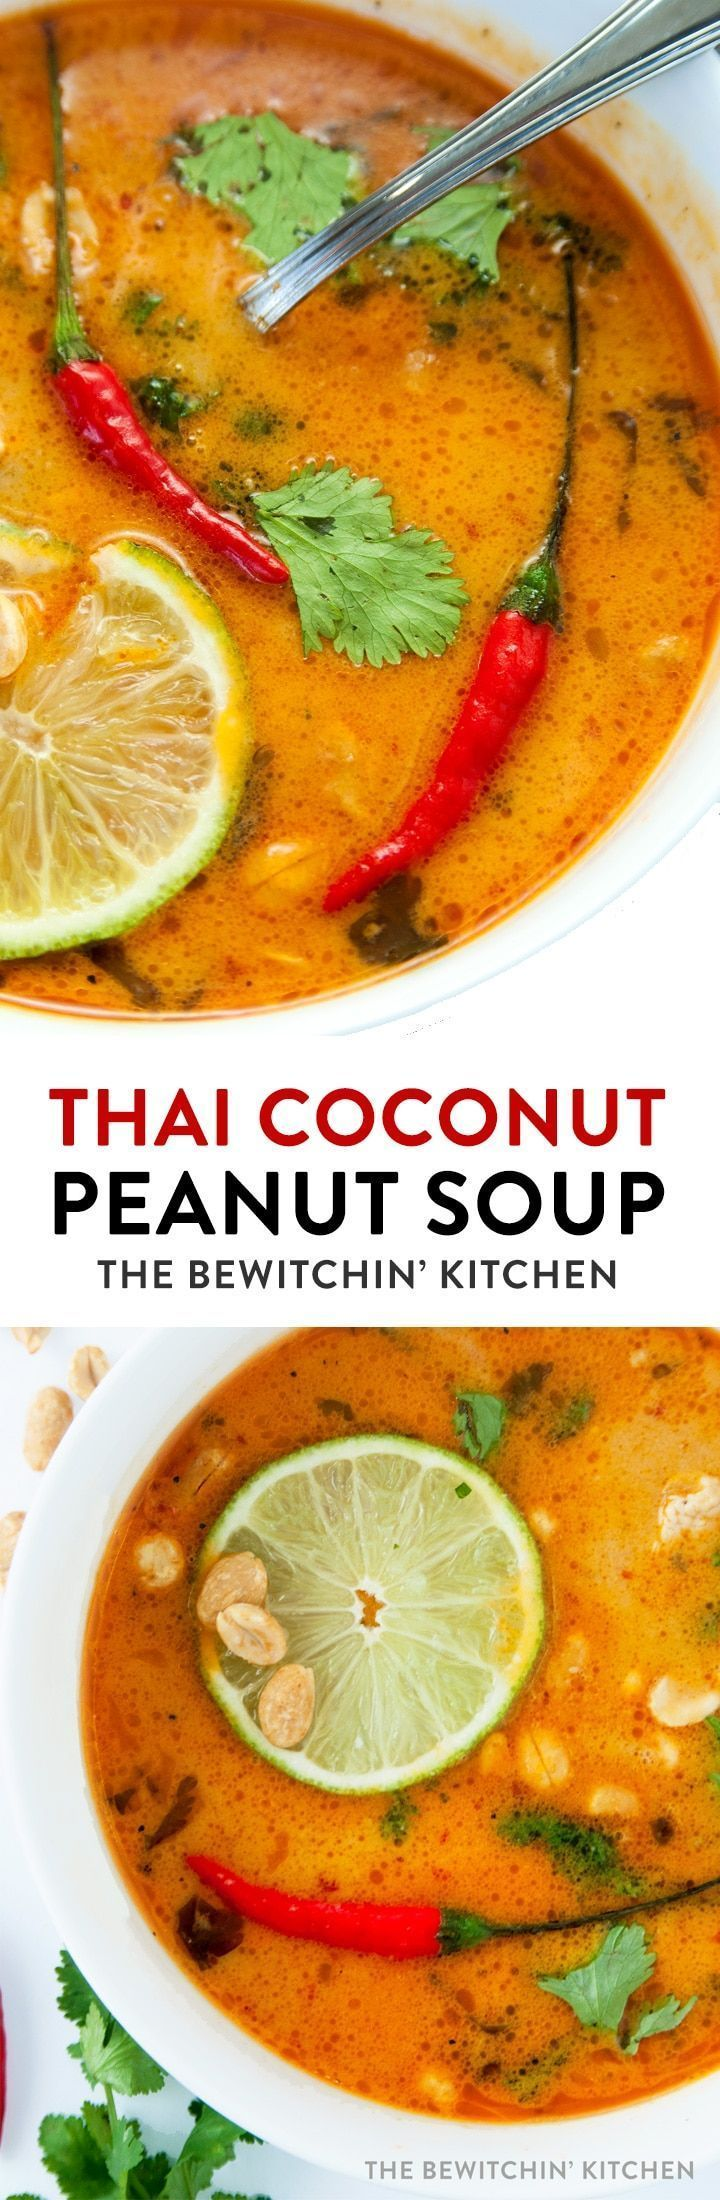 This Thai Coconut Peanut soup recipe makes a delicious and easy dinner. Made with chicken, chili paste, peanut butter, coconut milk and spices makes this perfect for your healthy dinner recipes board. Ingredients 2 Tablespoons red curry paste 2 12 ounce cans coconut milk 2 cups chicken stock or broth 1 Tablespoon fish sauce 2More